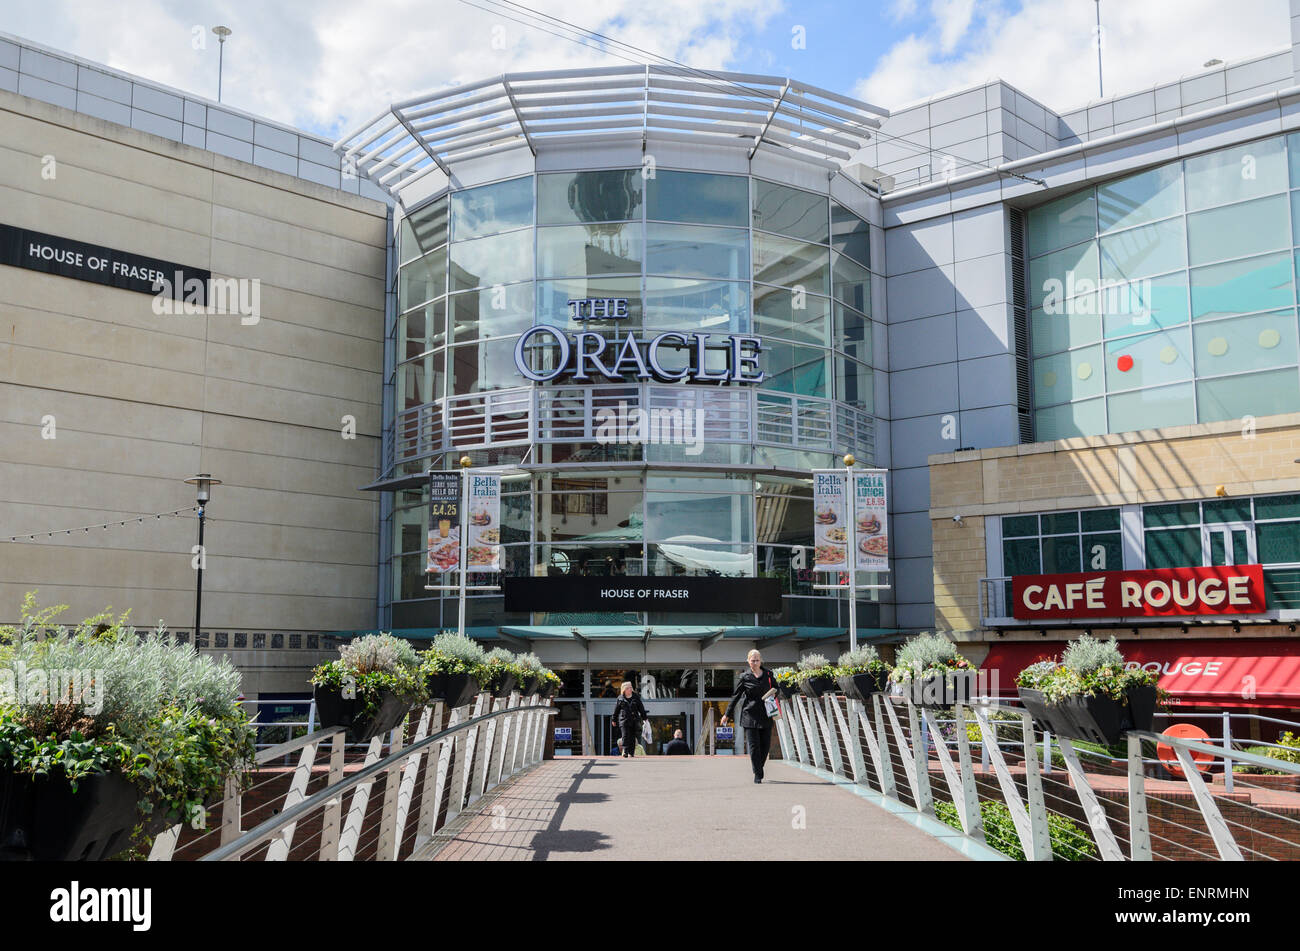 map reading comp with Stock Photo An Exterior View Of The Oracle Shopping Centre Reading Uk The Oracle 82270321 on Unit Three 1750 1914 in addition F 12 Pics furthermore J 20 Pics as well Stock Photo A Woodland Park Information Board And Map 23824860 additionally F 22 Pics.